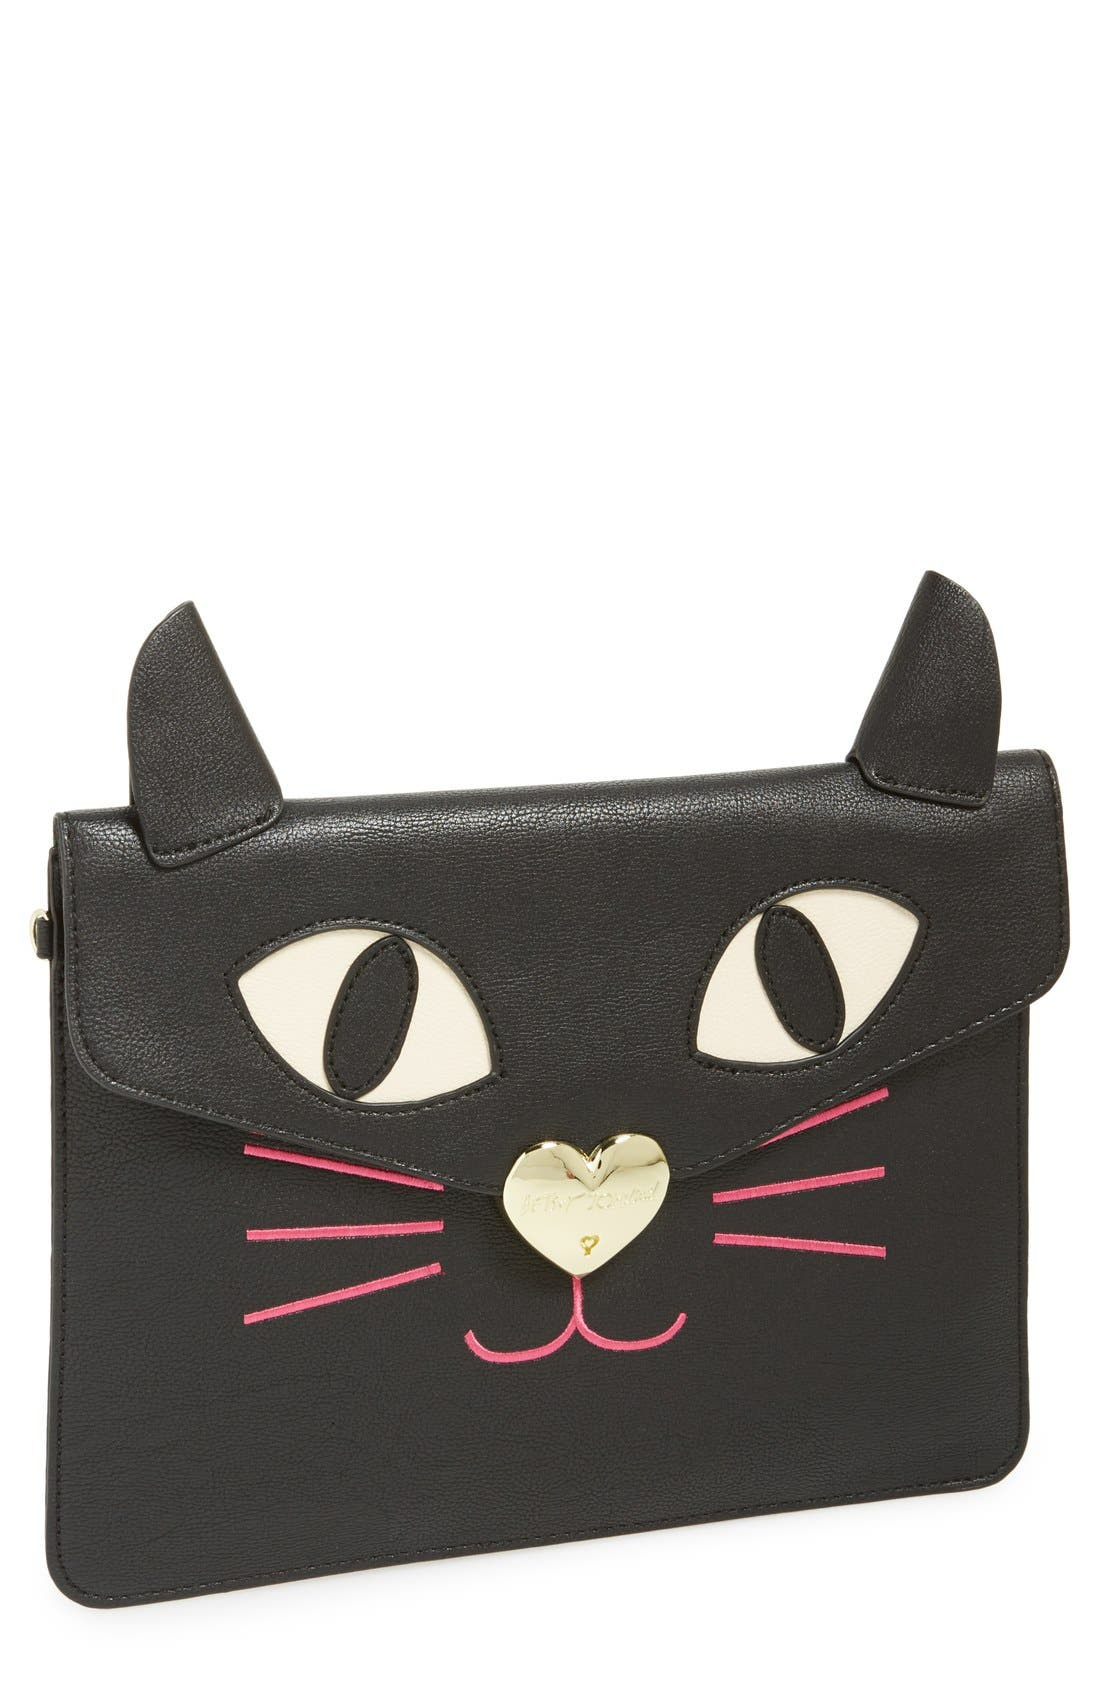 Main Image - Betsey Johnson Cat Clutch